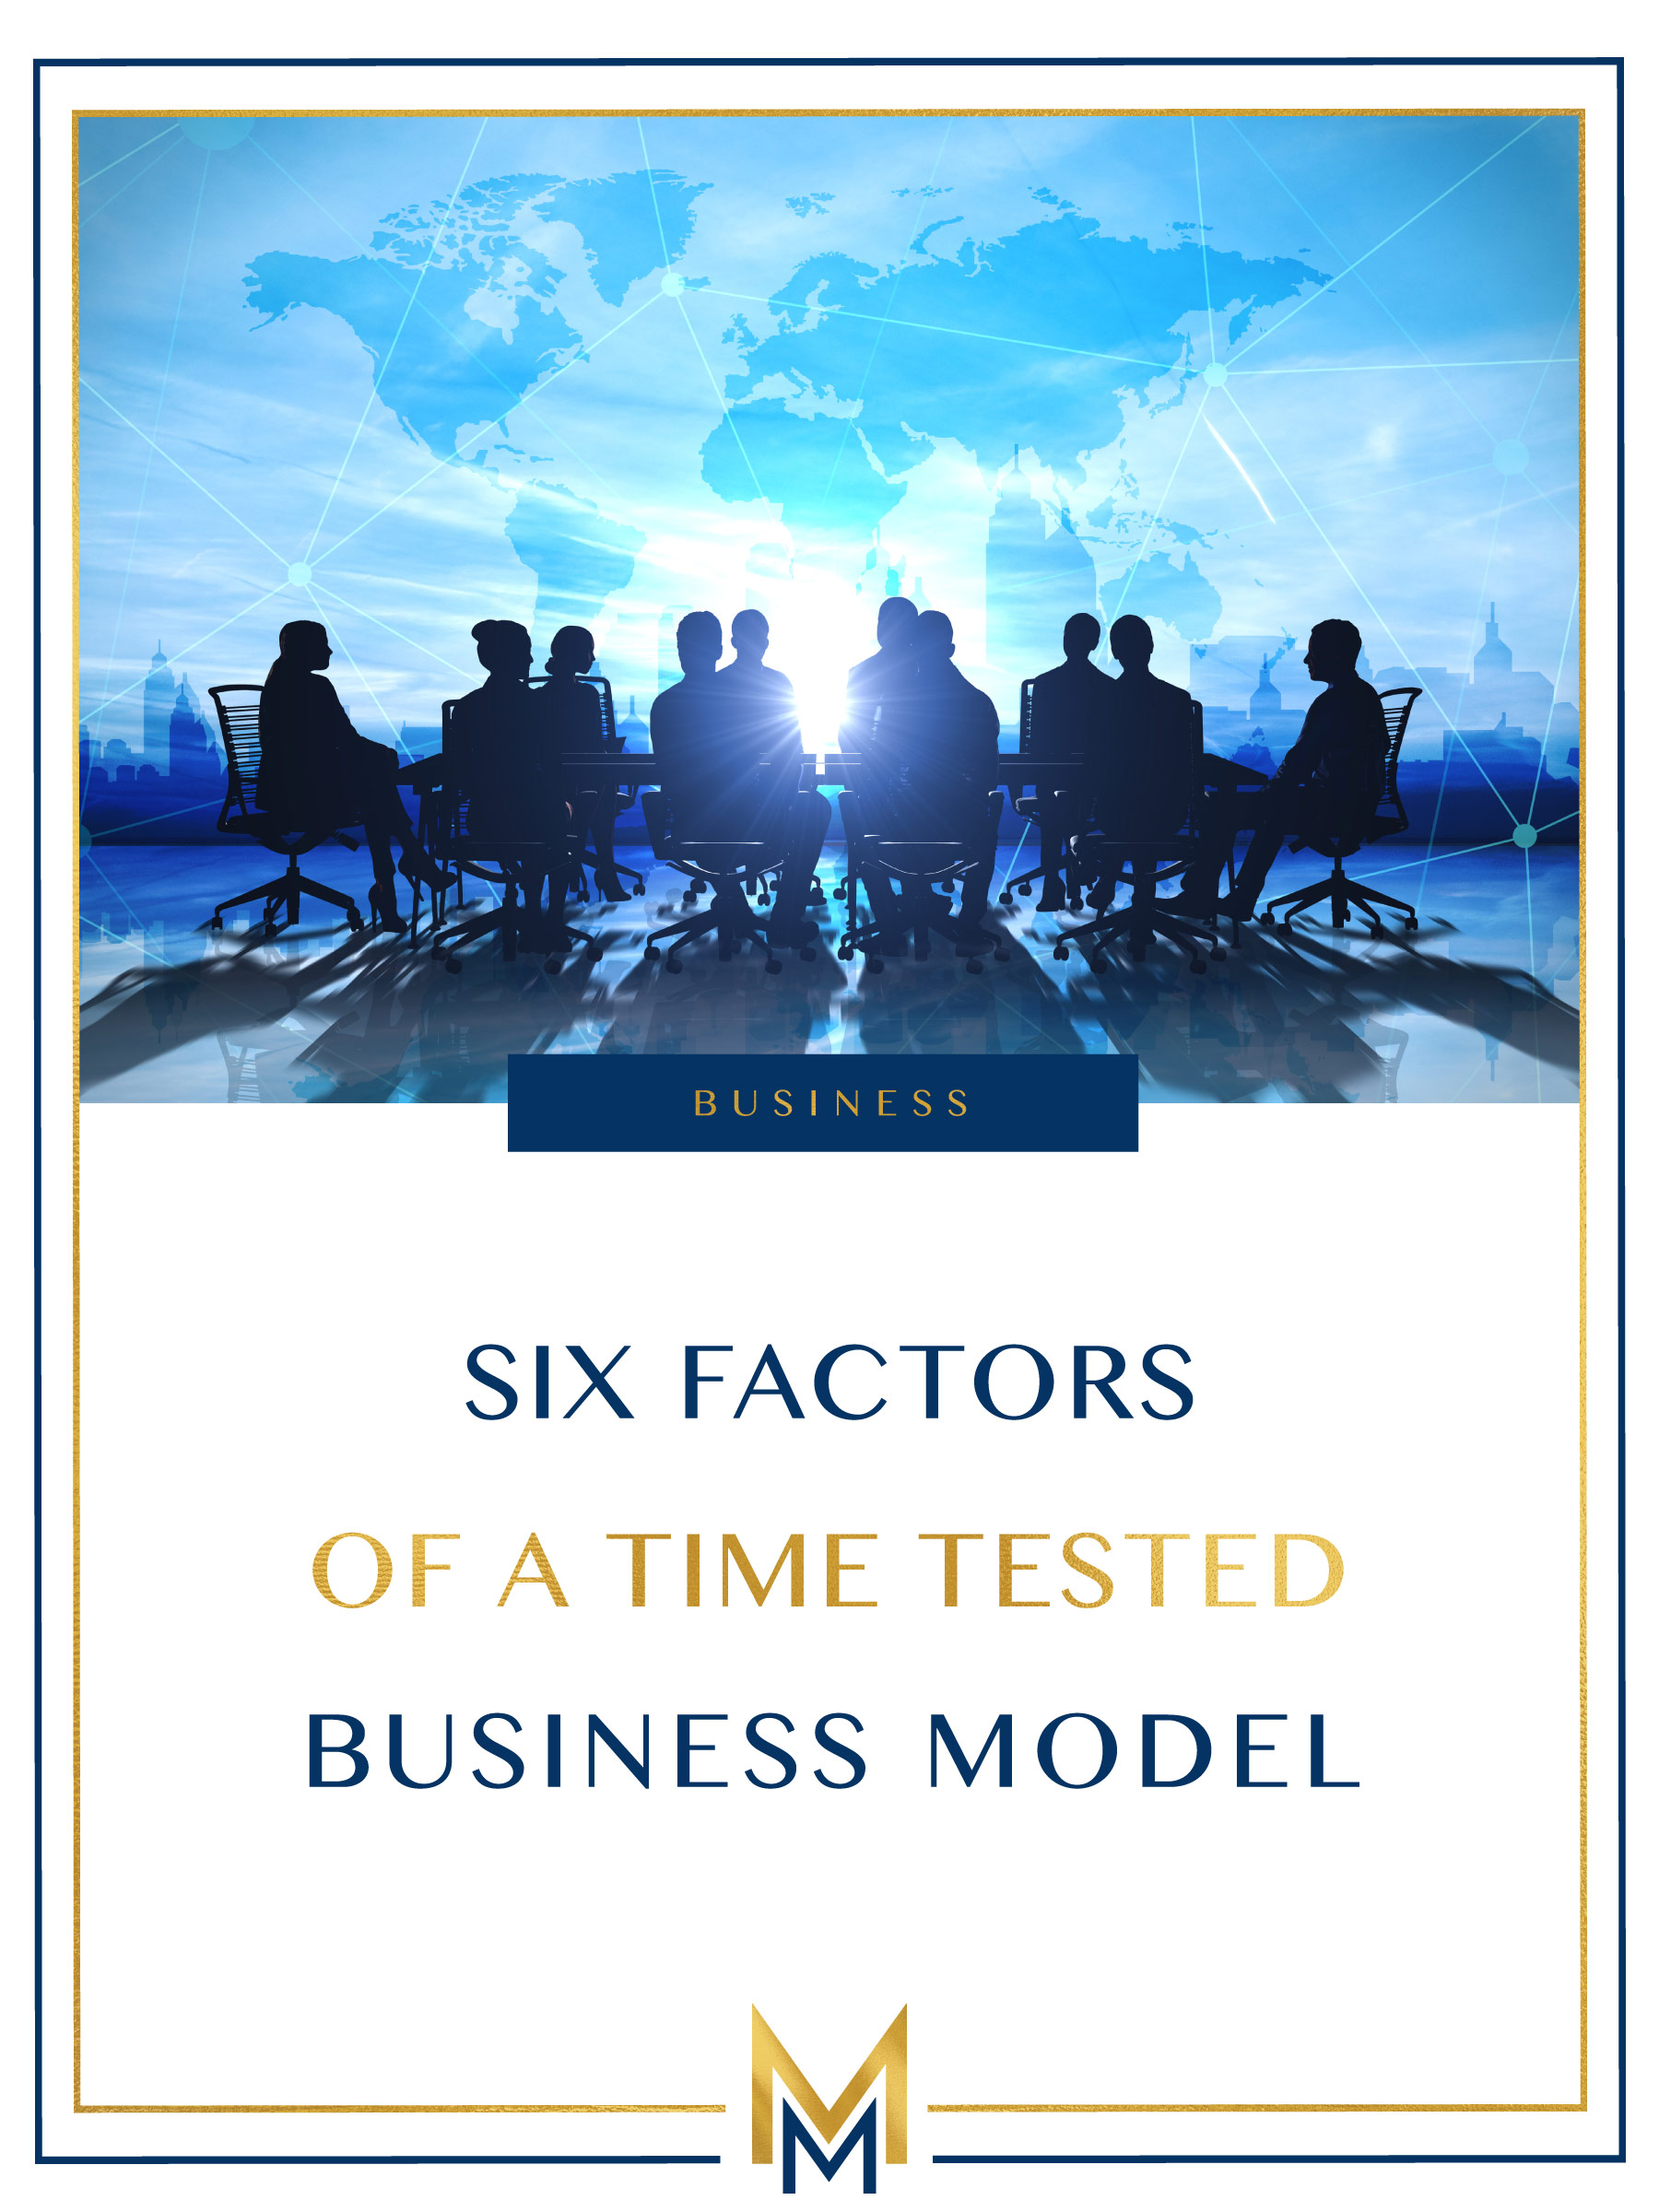 six-factors-of-a-time-tested-business-model.jpg